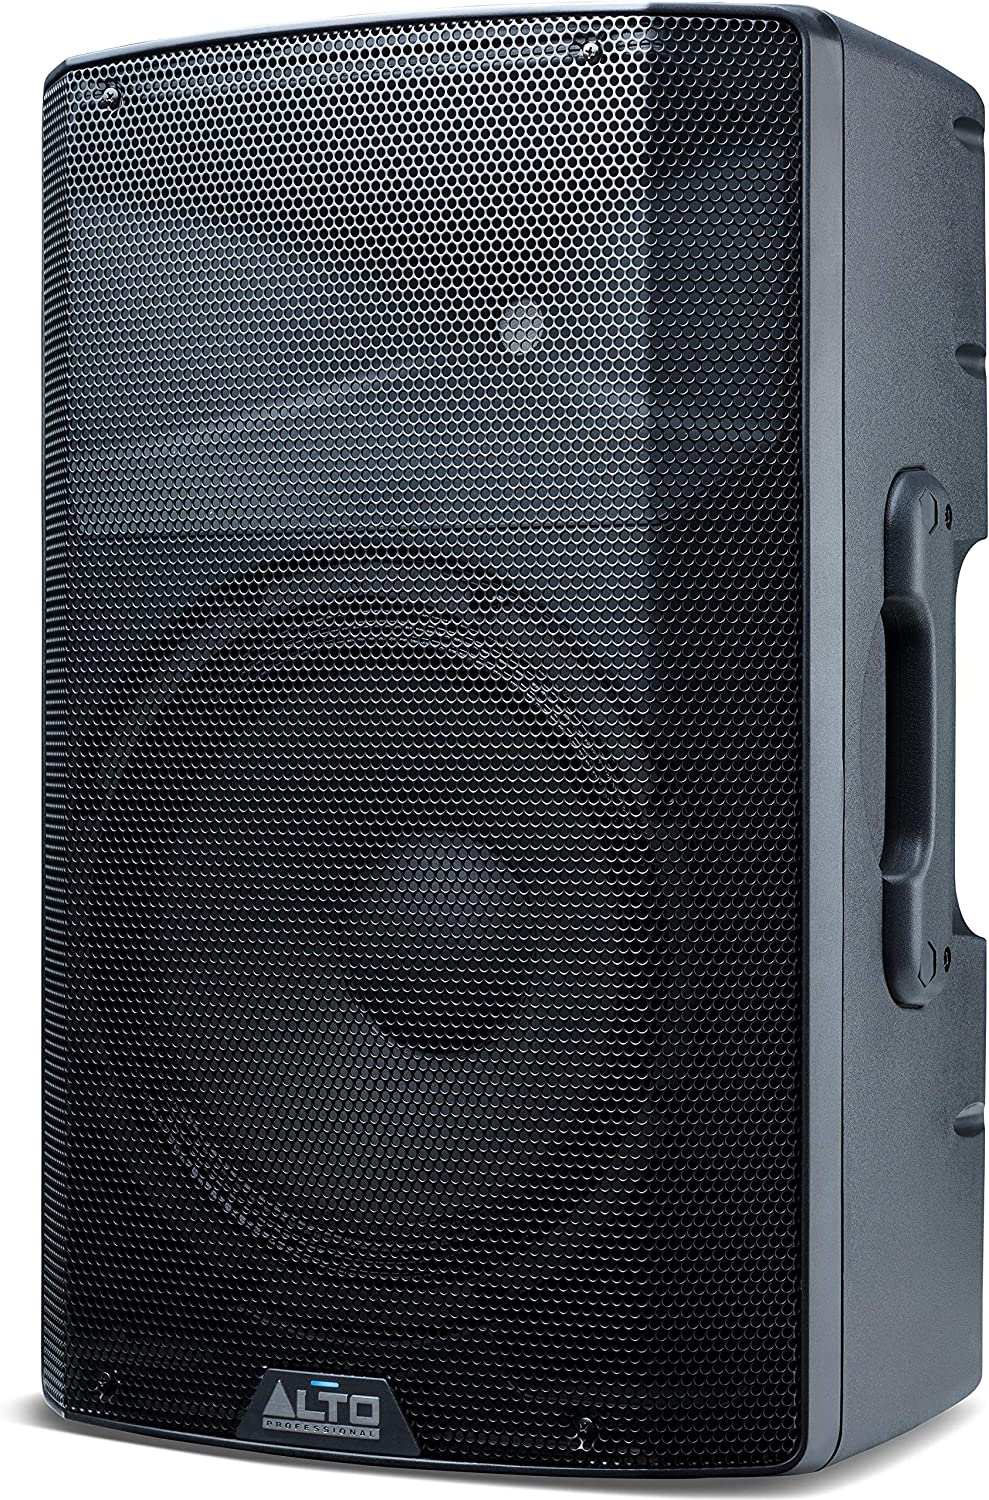 Alto Professional TX212 | 600-Watt 12-Inch 2-Way Powered Loudspeakers With Active Crossover, Performance-Driven Connectivity and Integrated Analogue Limiter